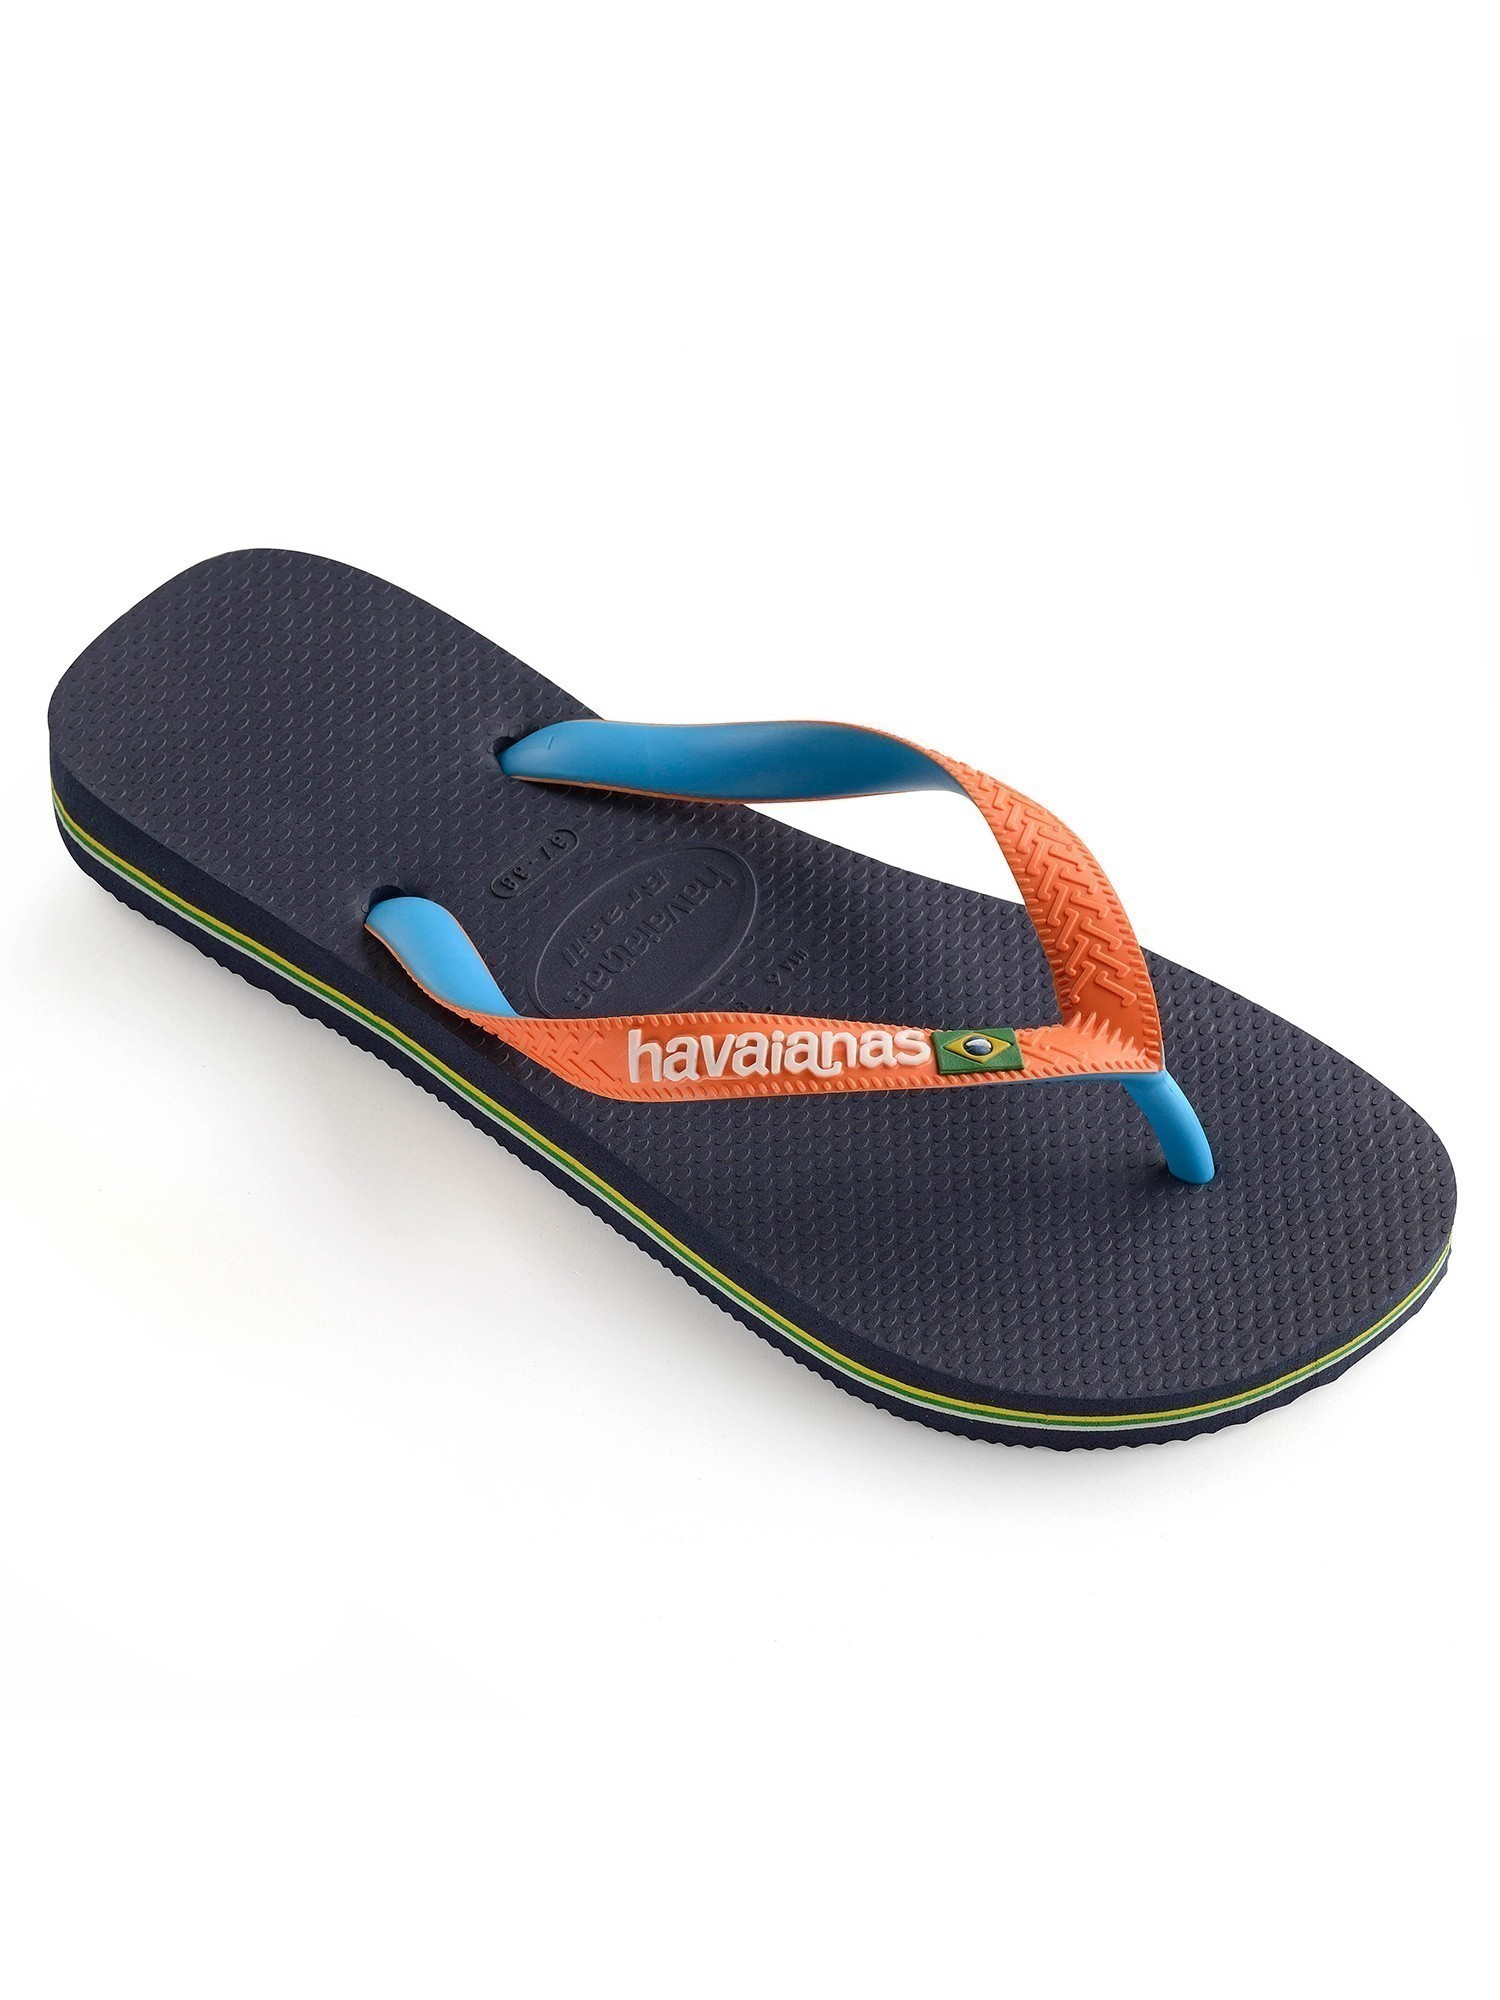 e639e49f2e1cce Havaianas Navy Orange Brasil Mix Flip Flops